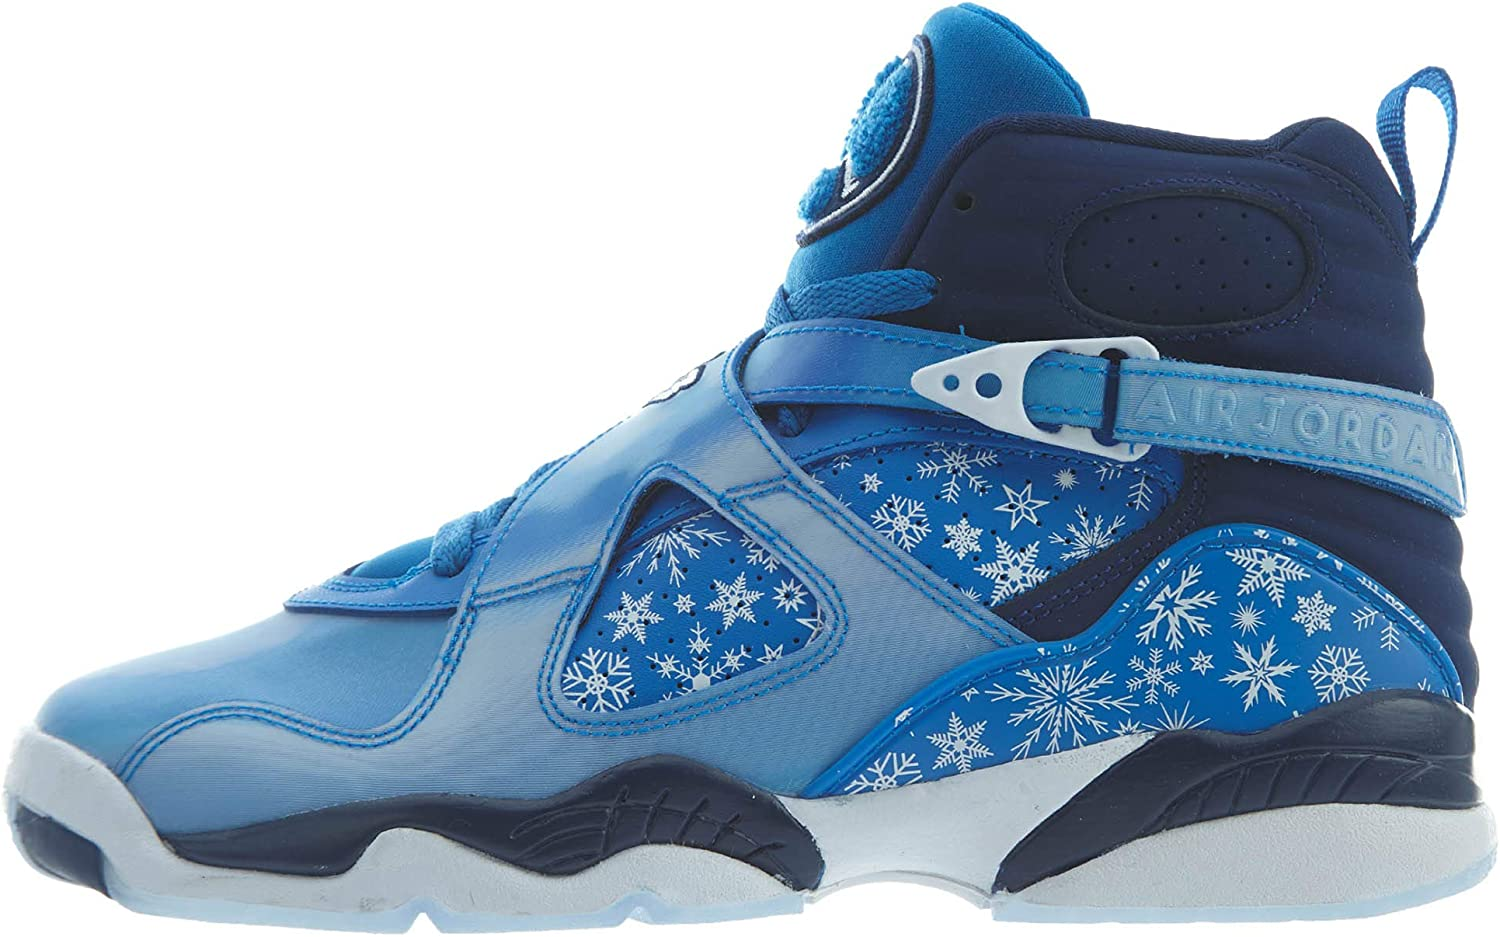 Air Jordan 8 Retro GS 'Snowflake'